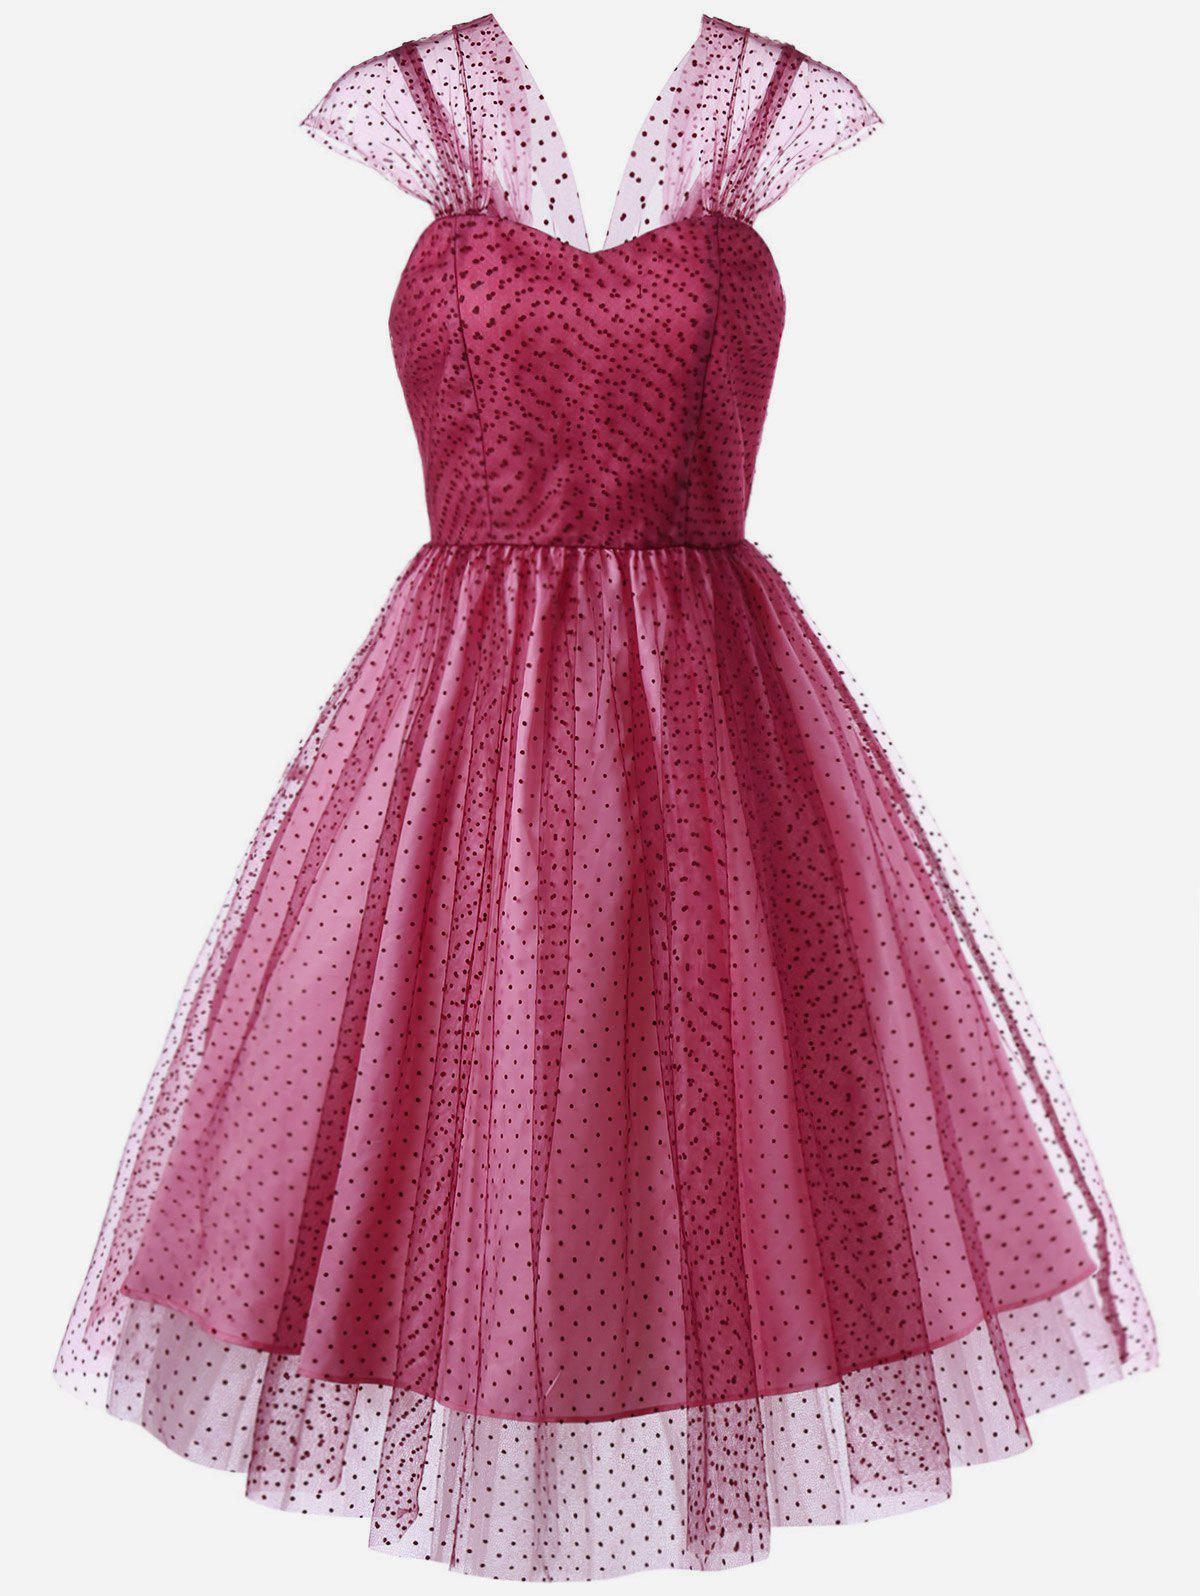 Polka Dot Bandeau Tulle Cocktail Dress - ROSE MADDER L